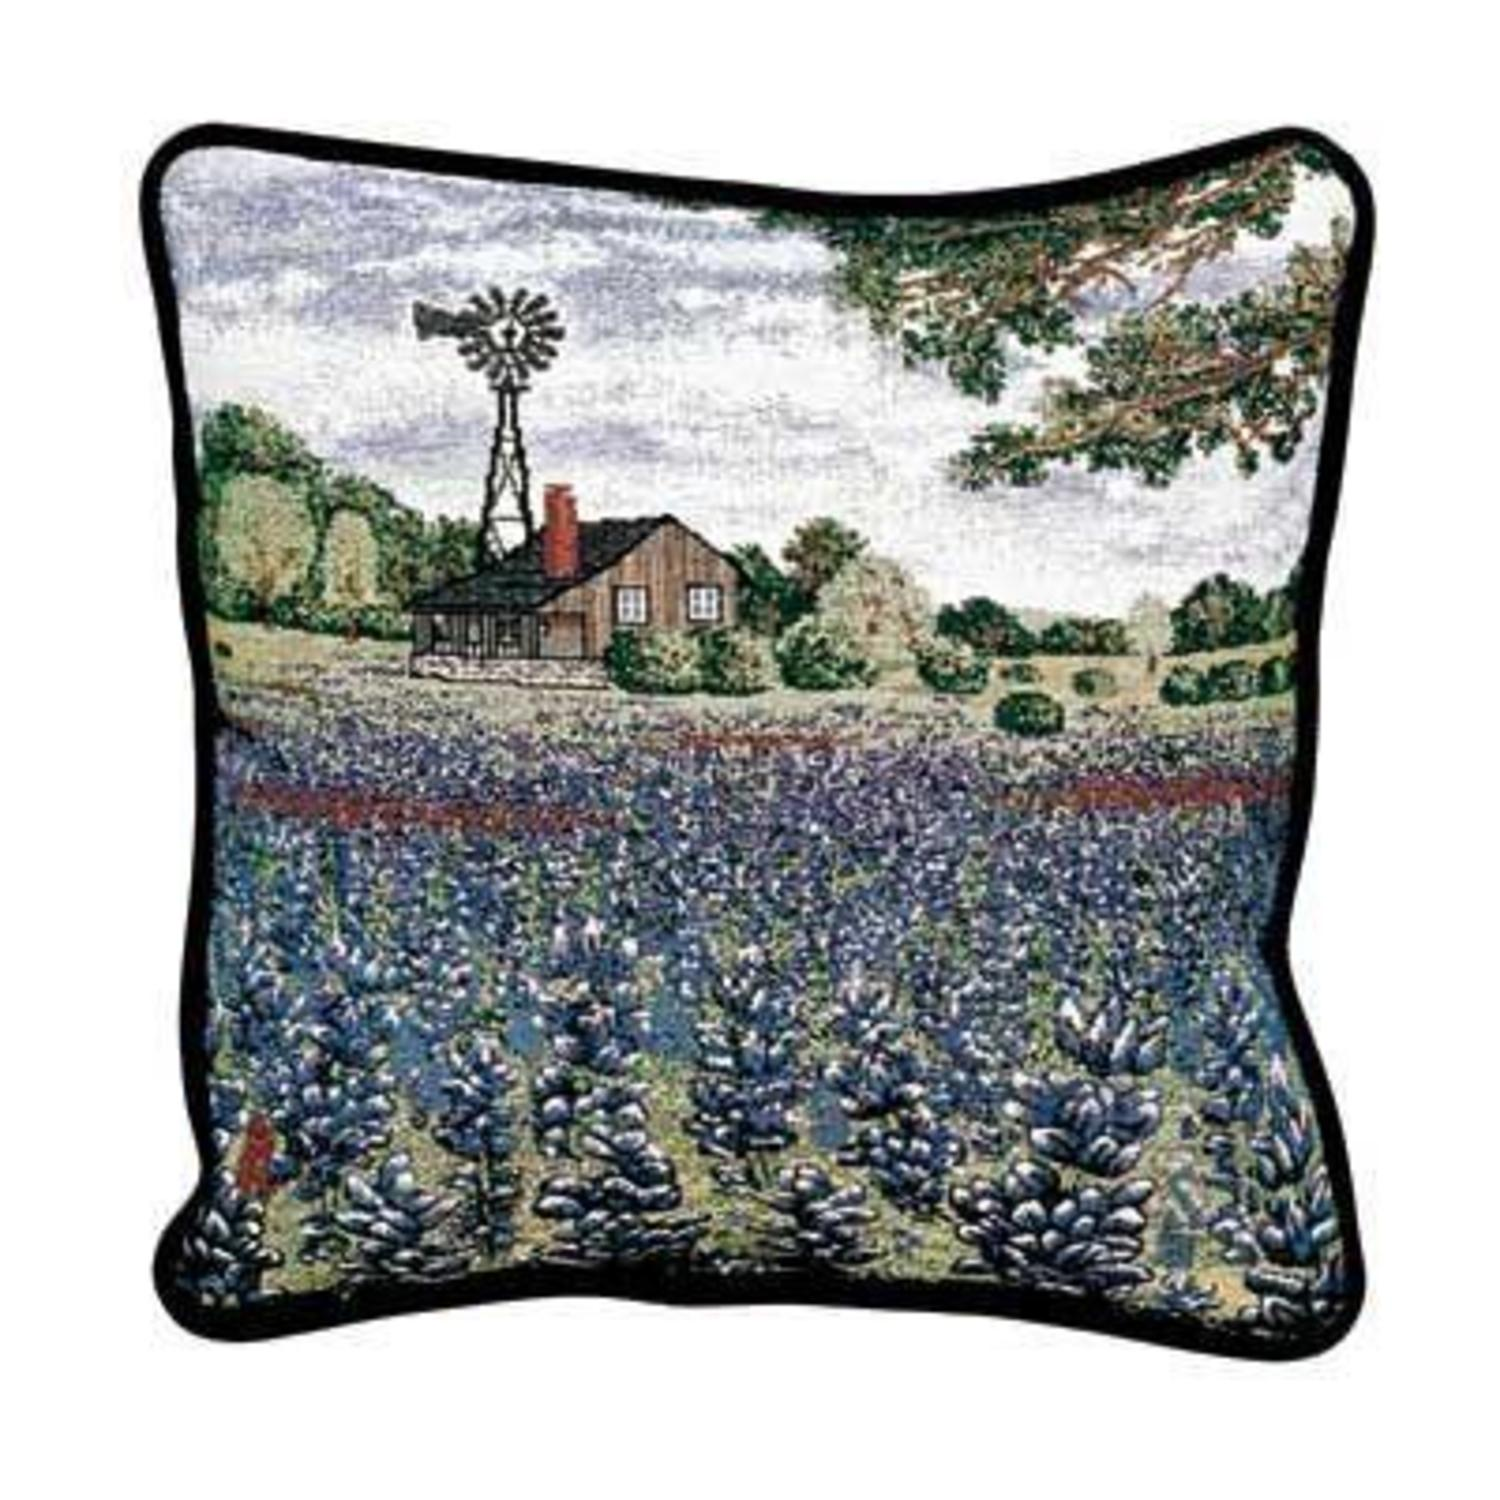 Throw Pillow Deals : Texas Bluebonnets Decorative Accent Throw Pillows 17